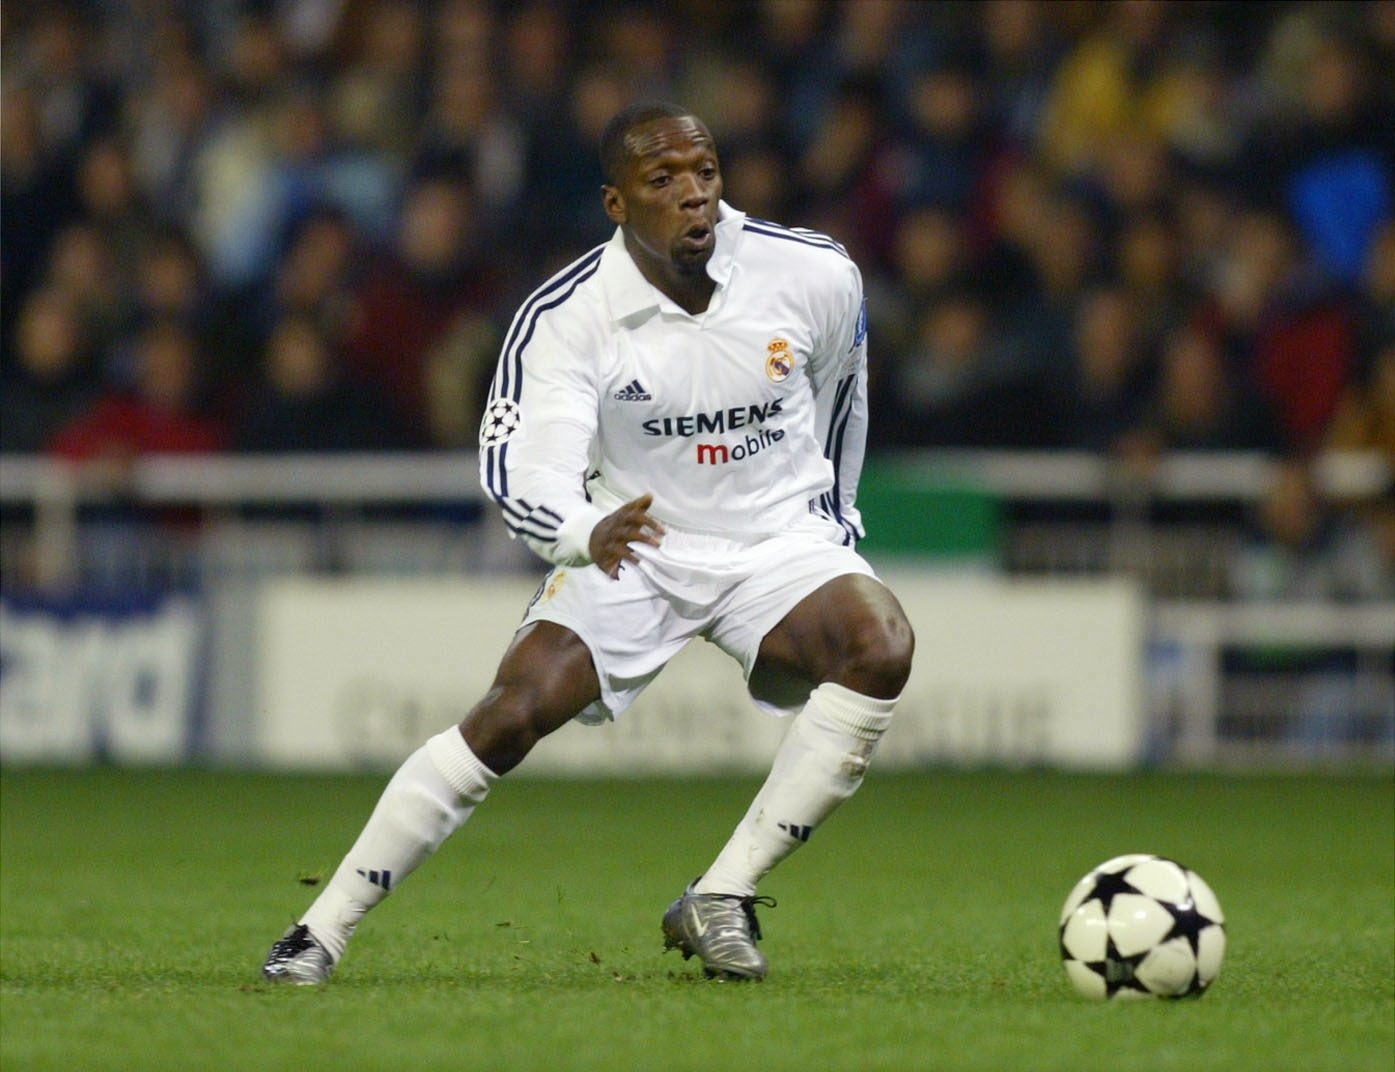 In Pictures Swansea S New Assistant Coach Claude Makelele